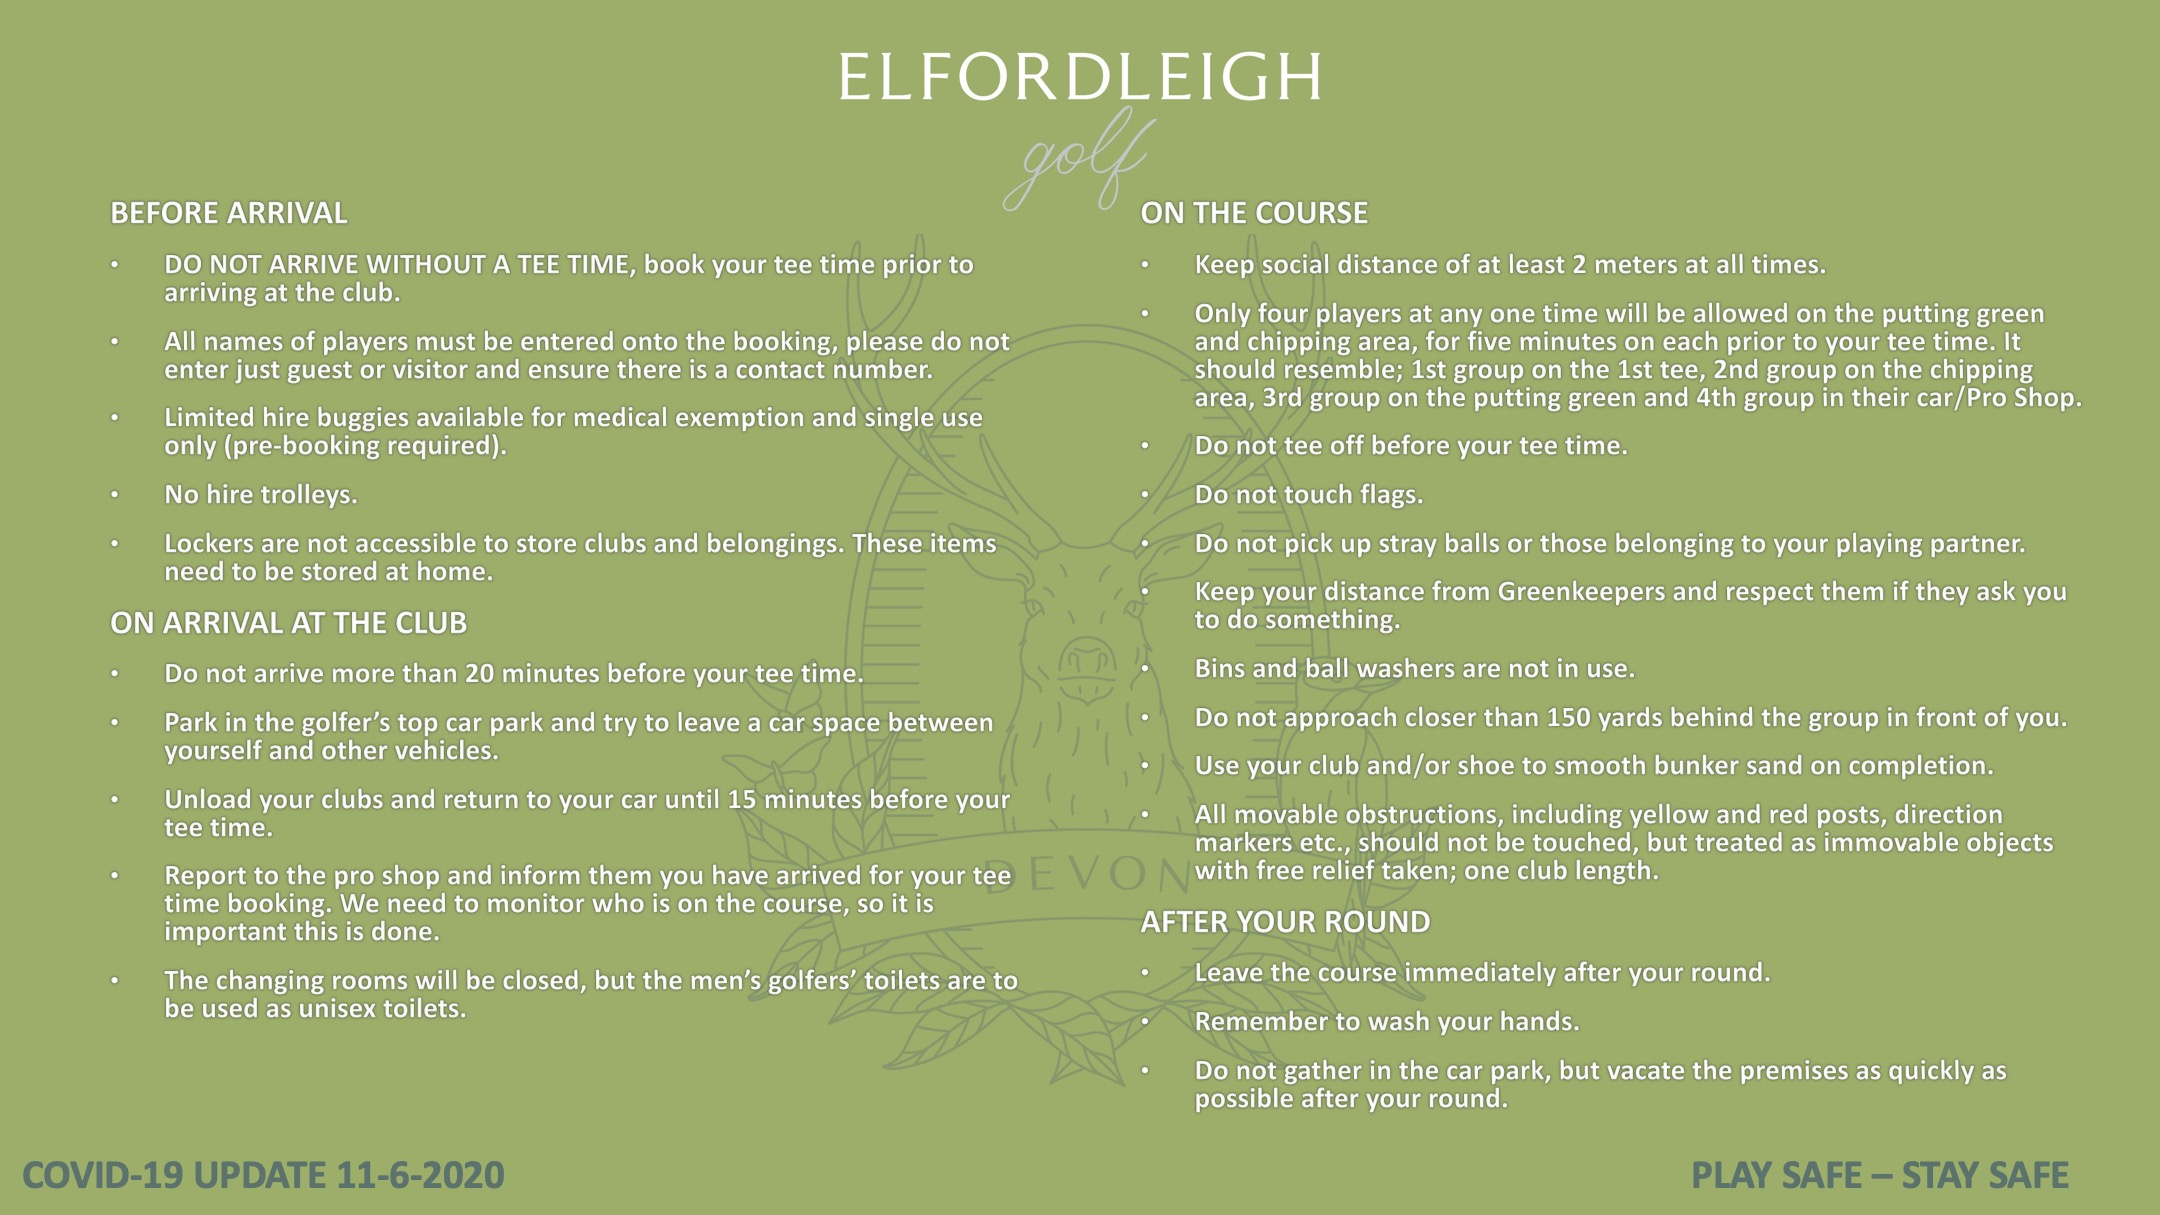 COVID-19 golf guidelines Elfordleigh 11-6-2020